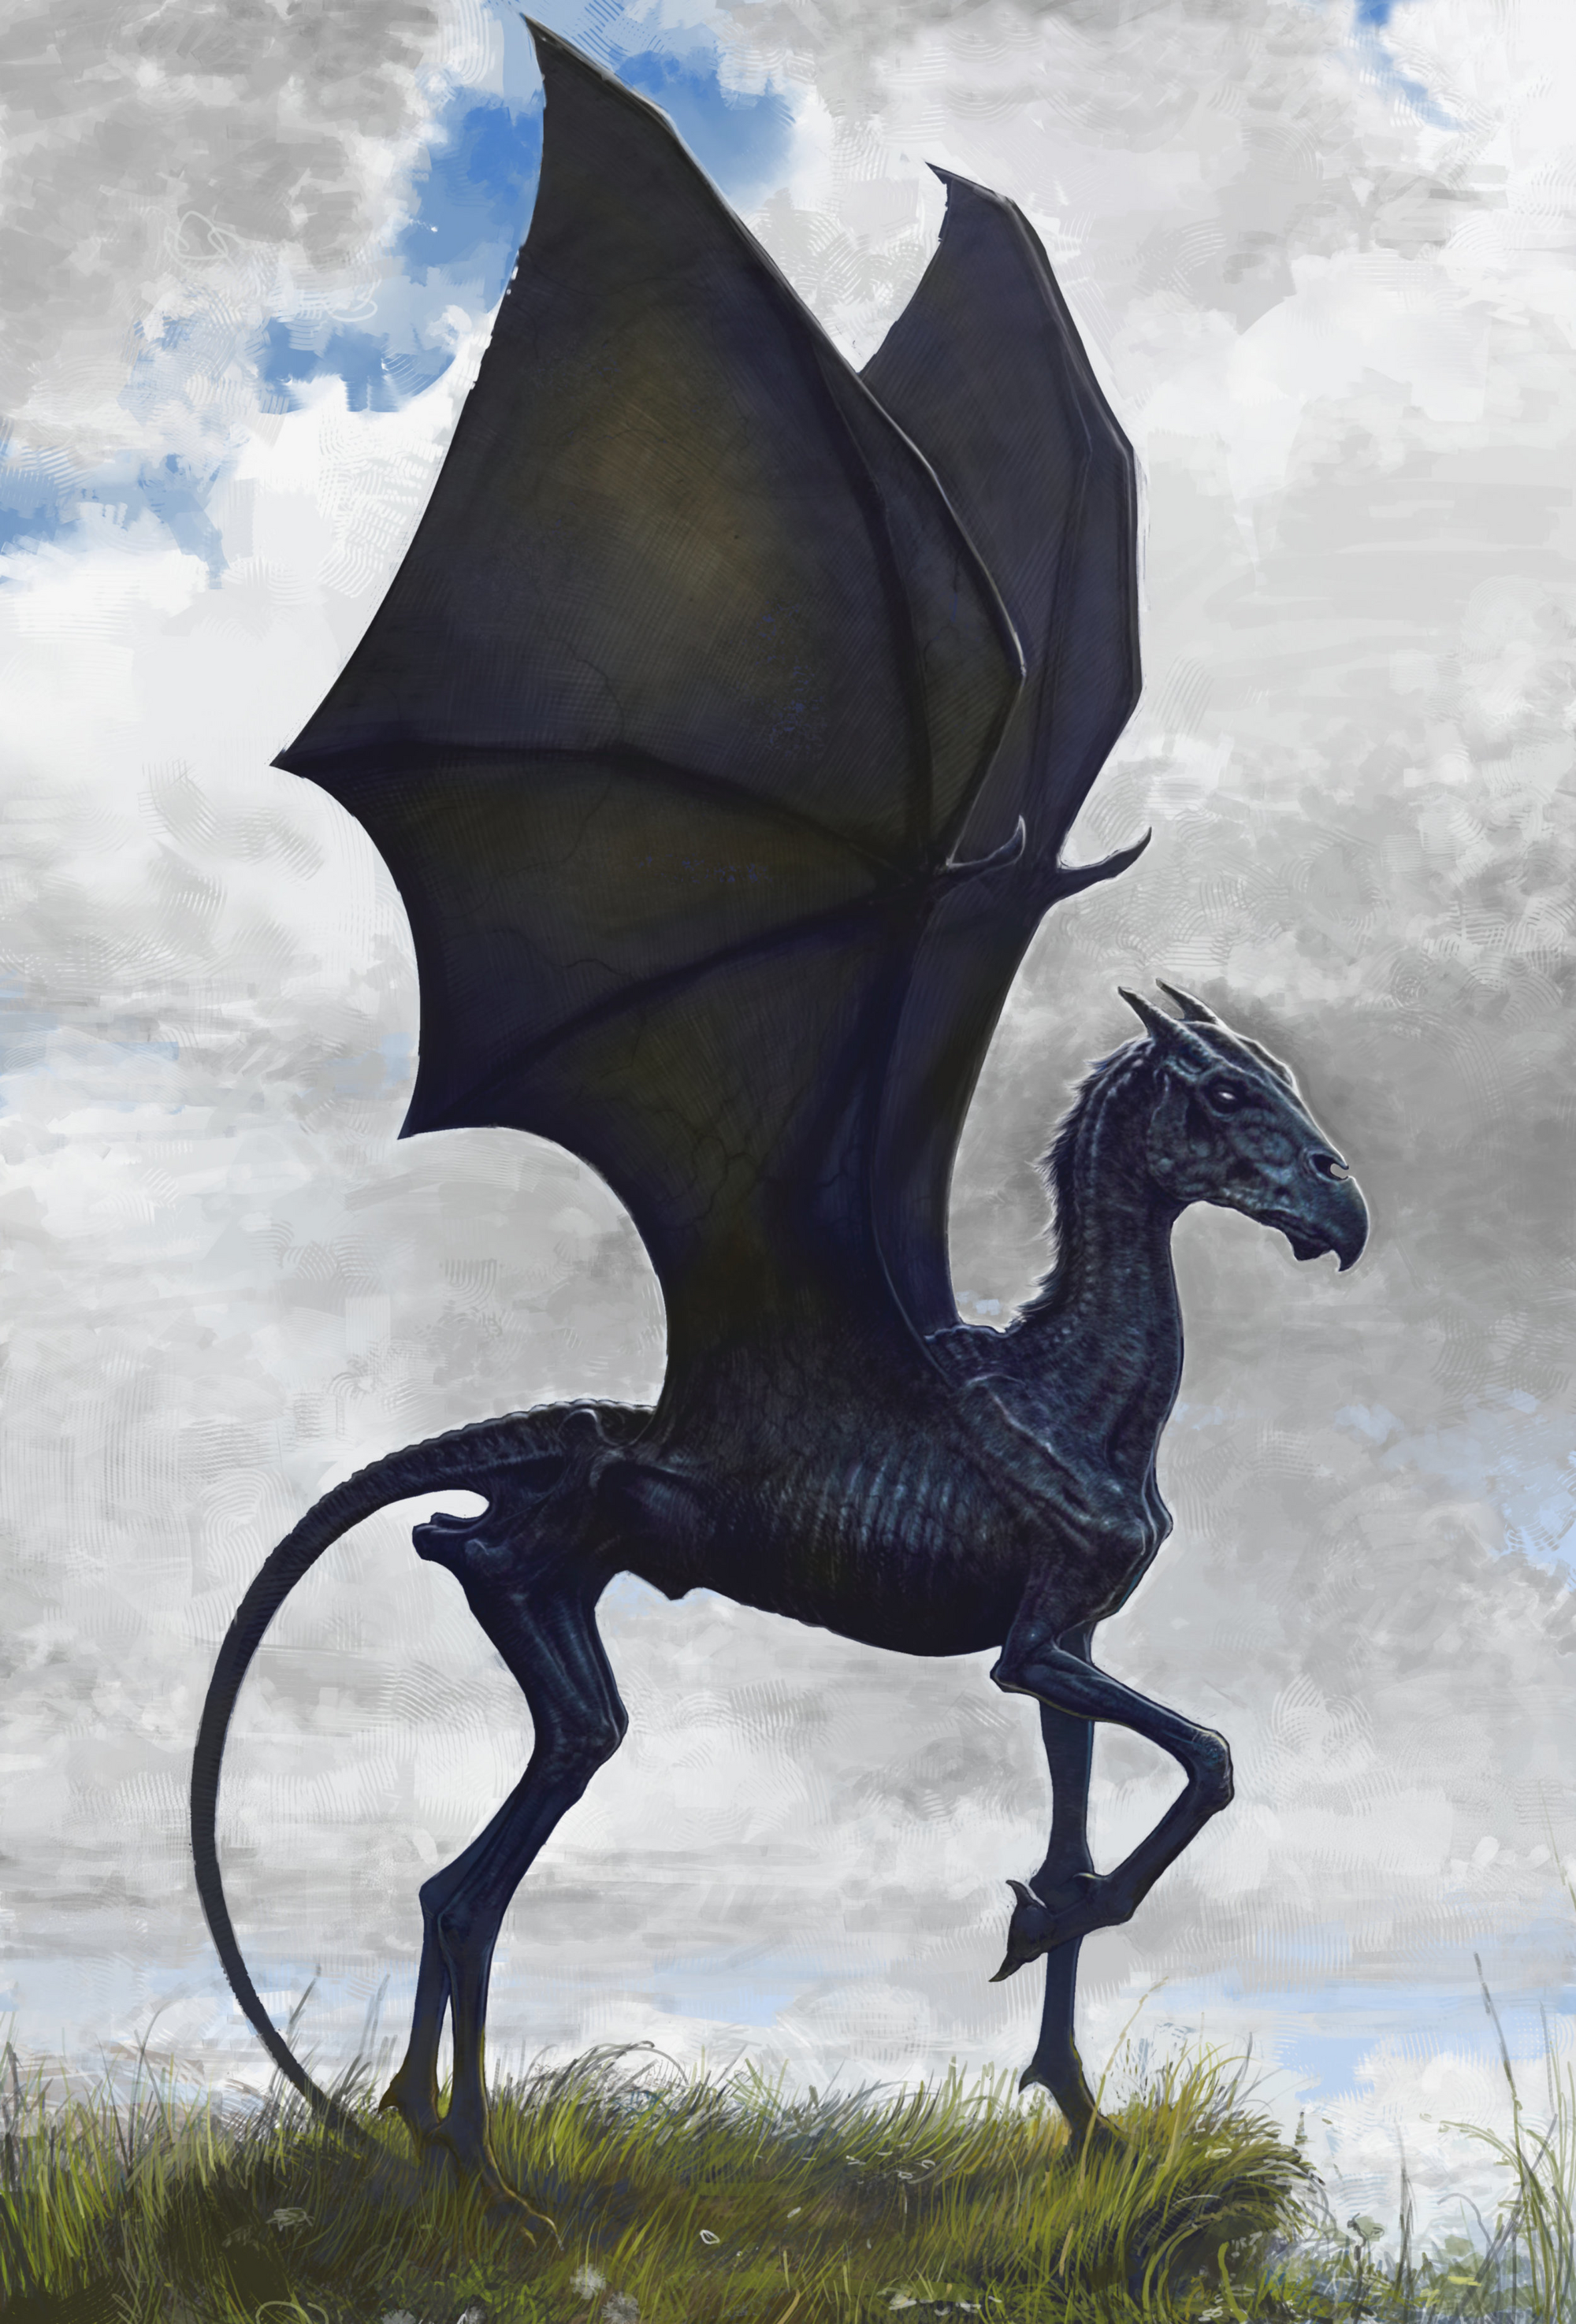 Thestral | Harry Potter Wiki | FANDOM powered by Wikia